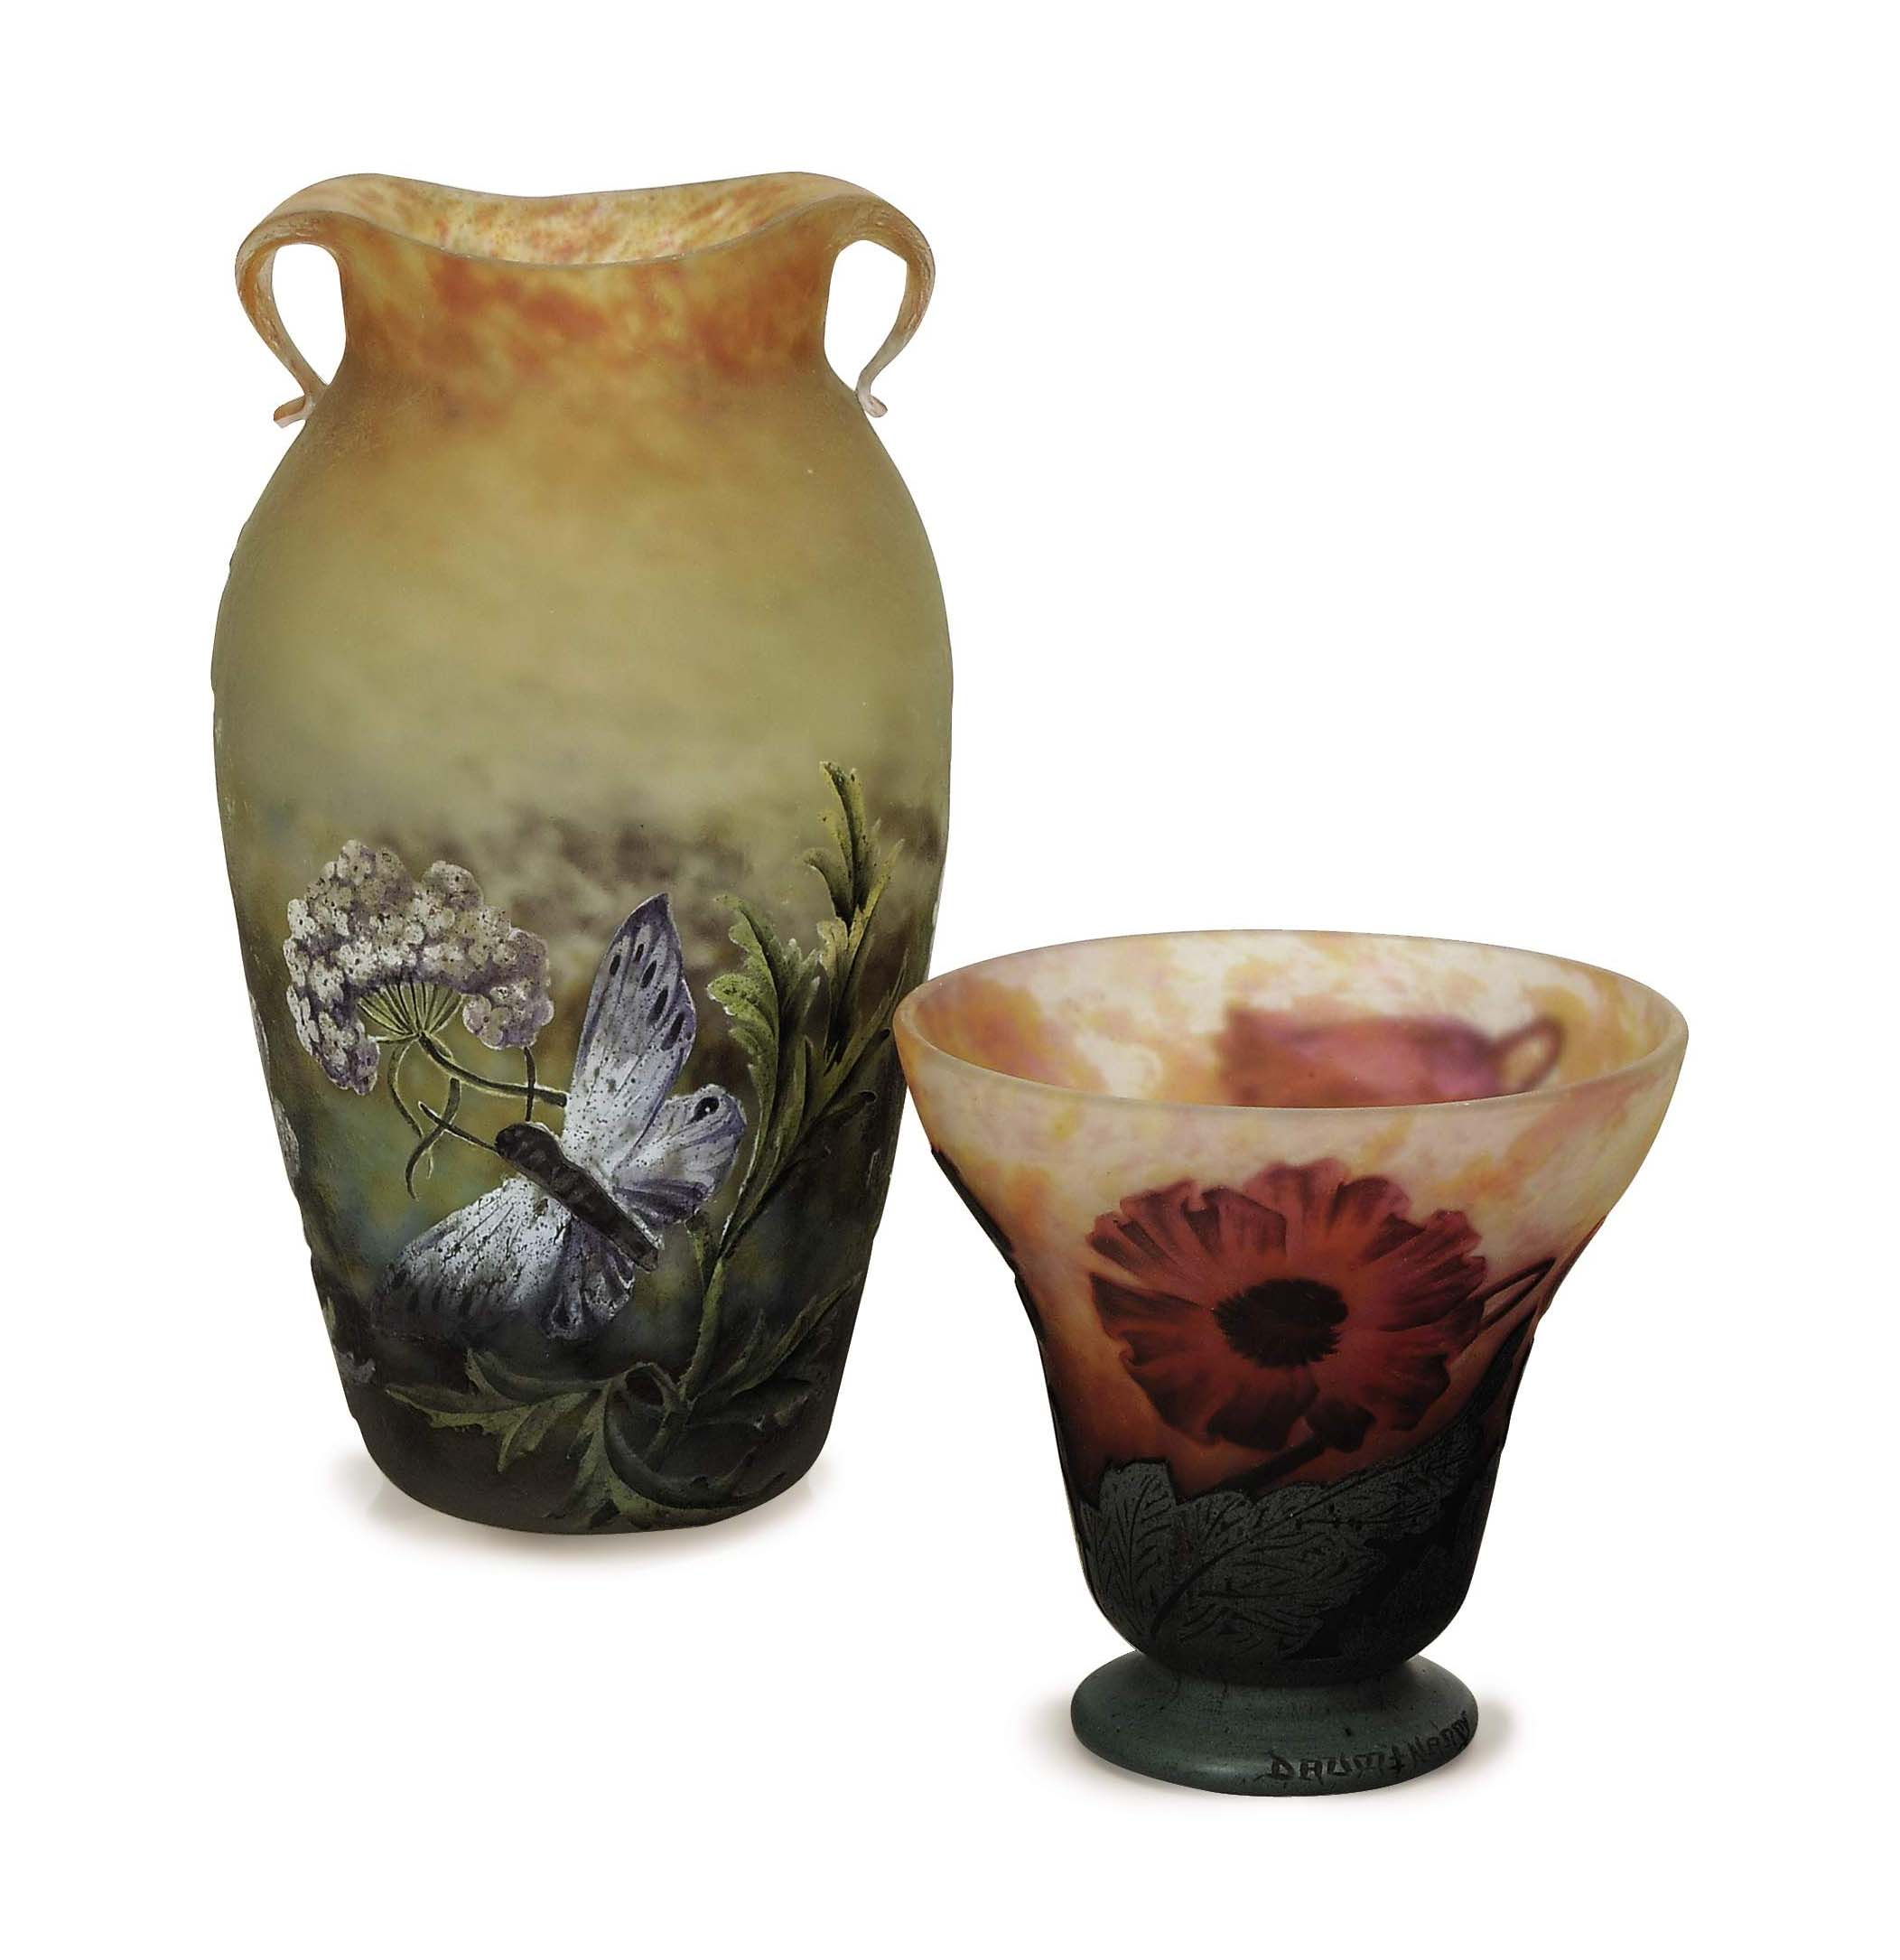 TWO FRENCH ETCHED AND ENAMELED CAMEO GLASS VASES,